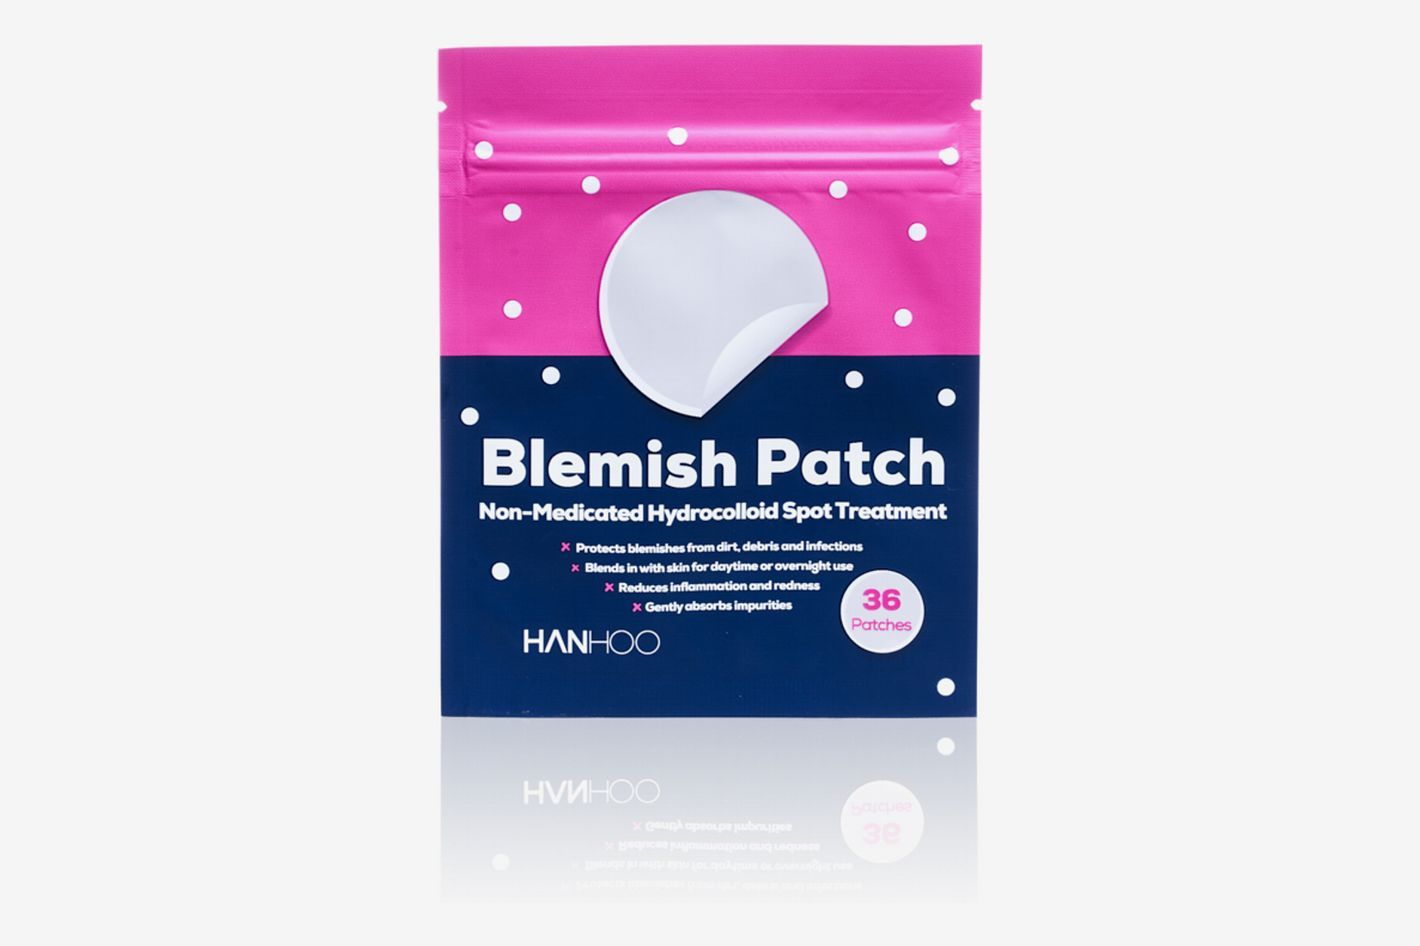 Hanhoo Blemish Patch (Pack of 36)